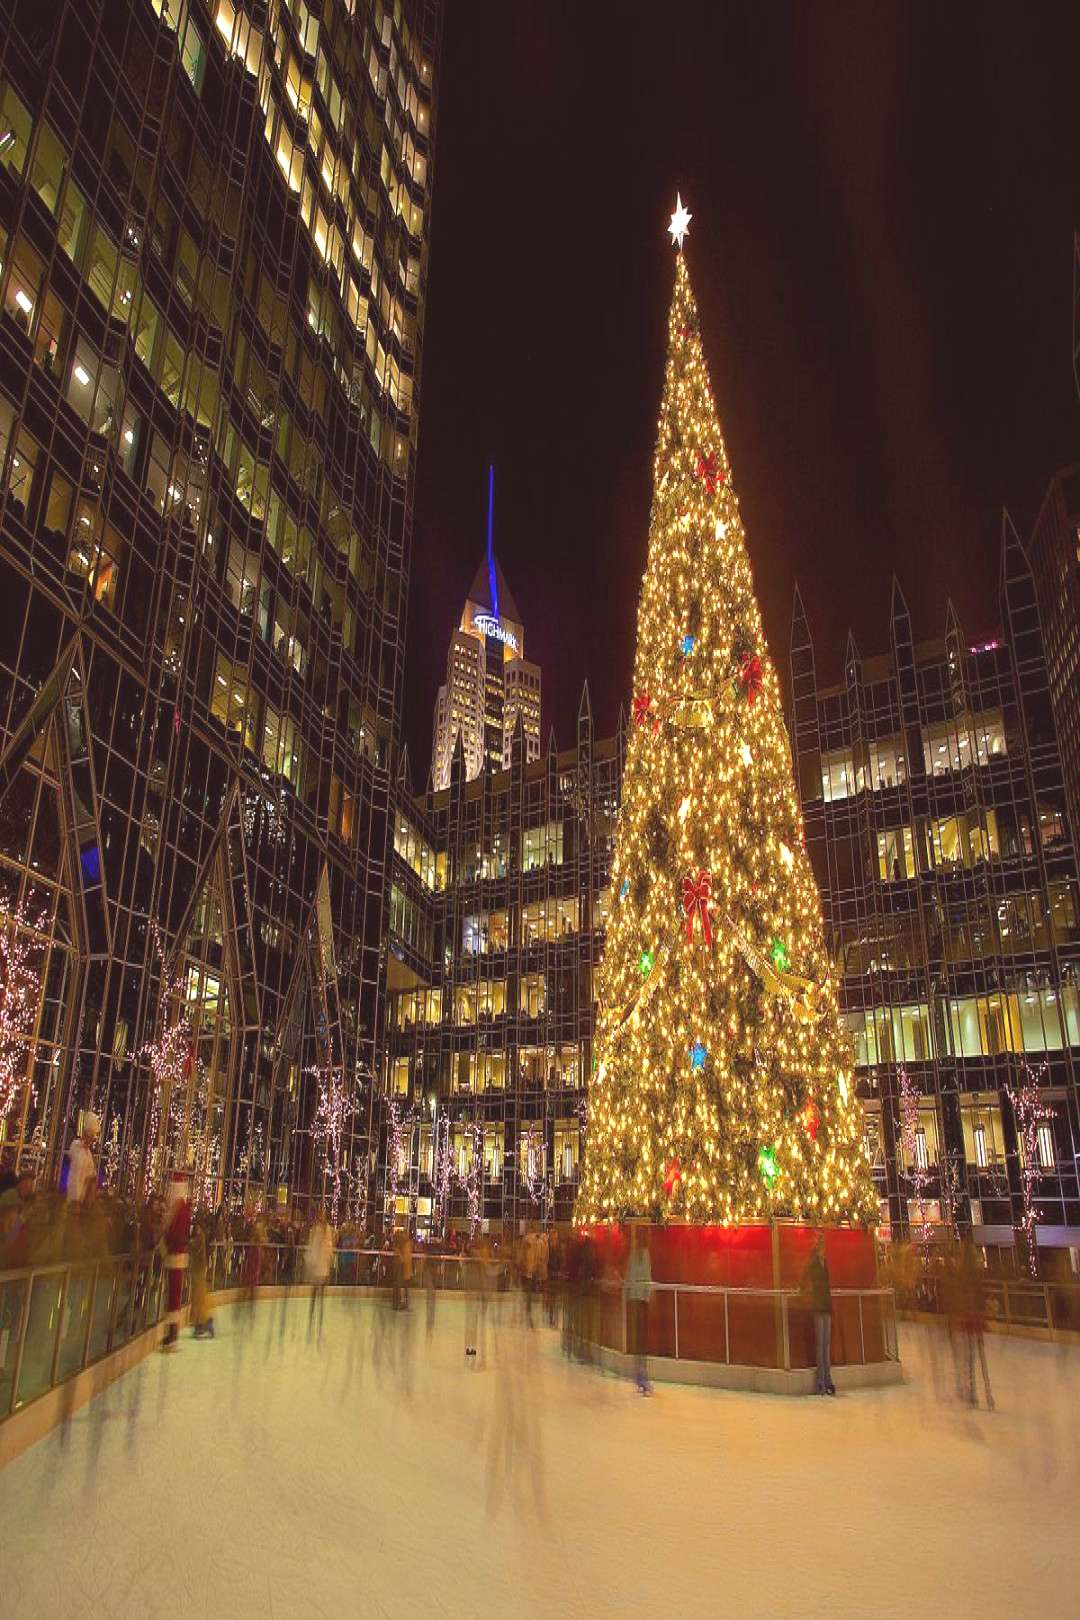 100 reference of pittsburgh light up night traffic pittsburgh light up night traffic-#pittsburgh Pl